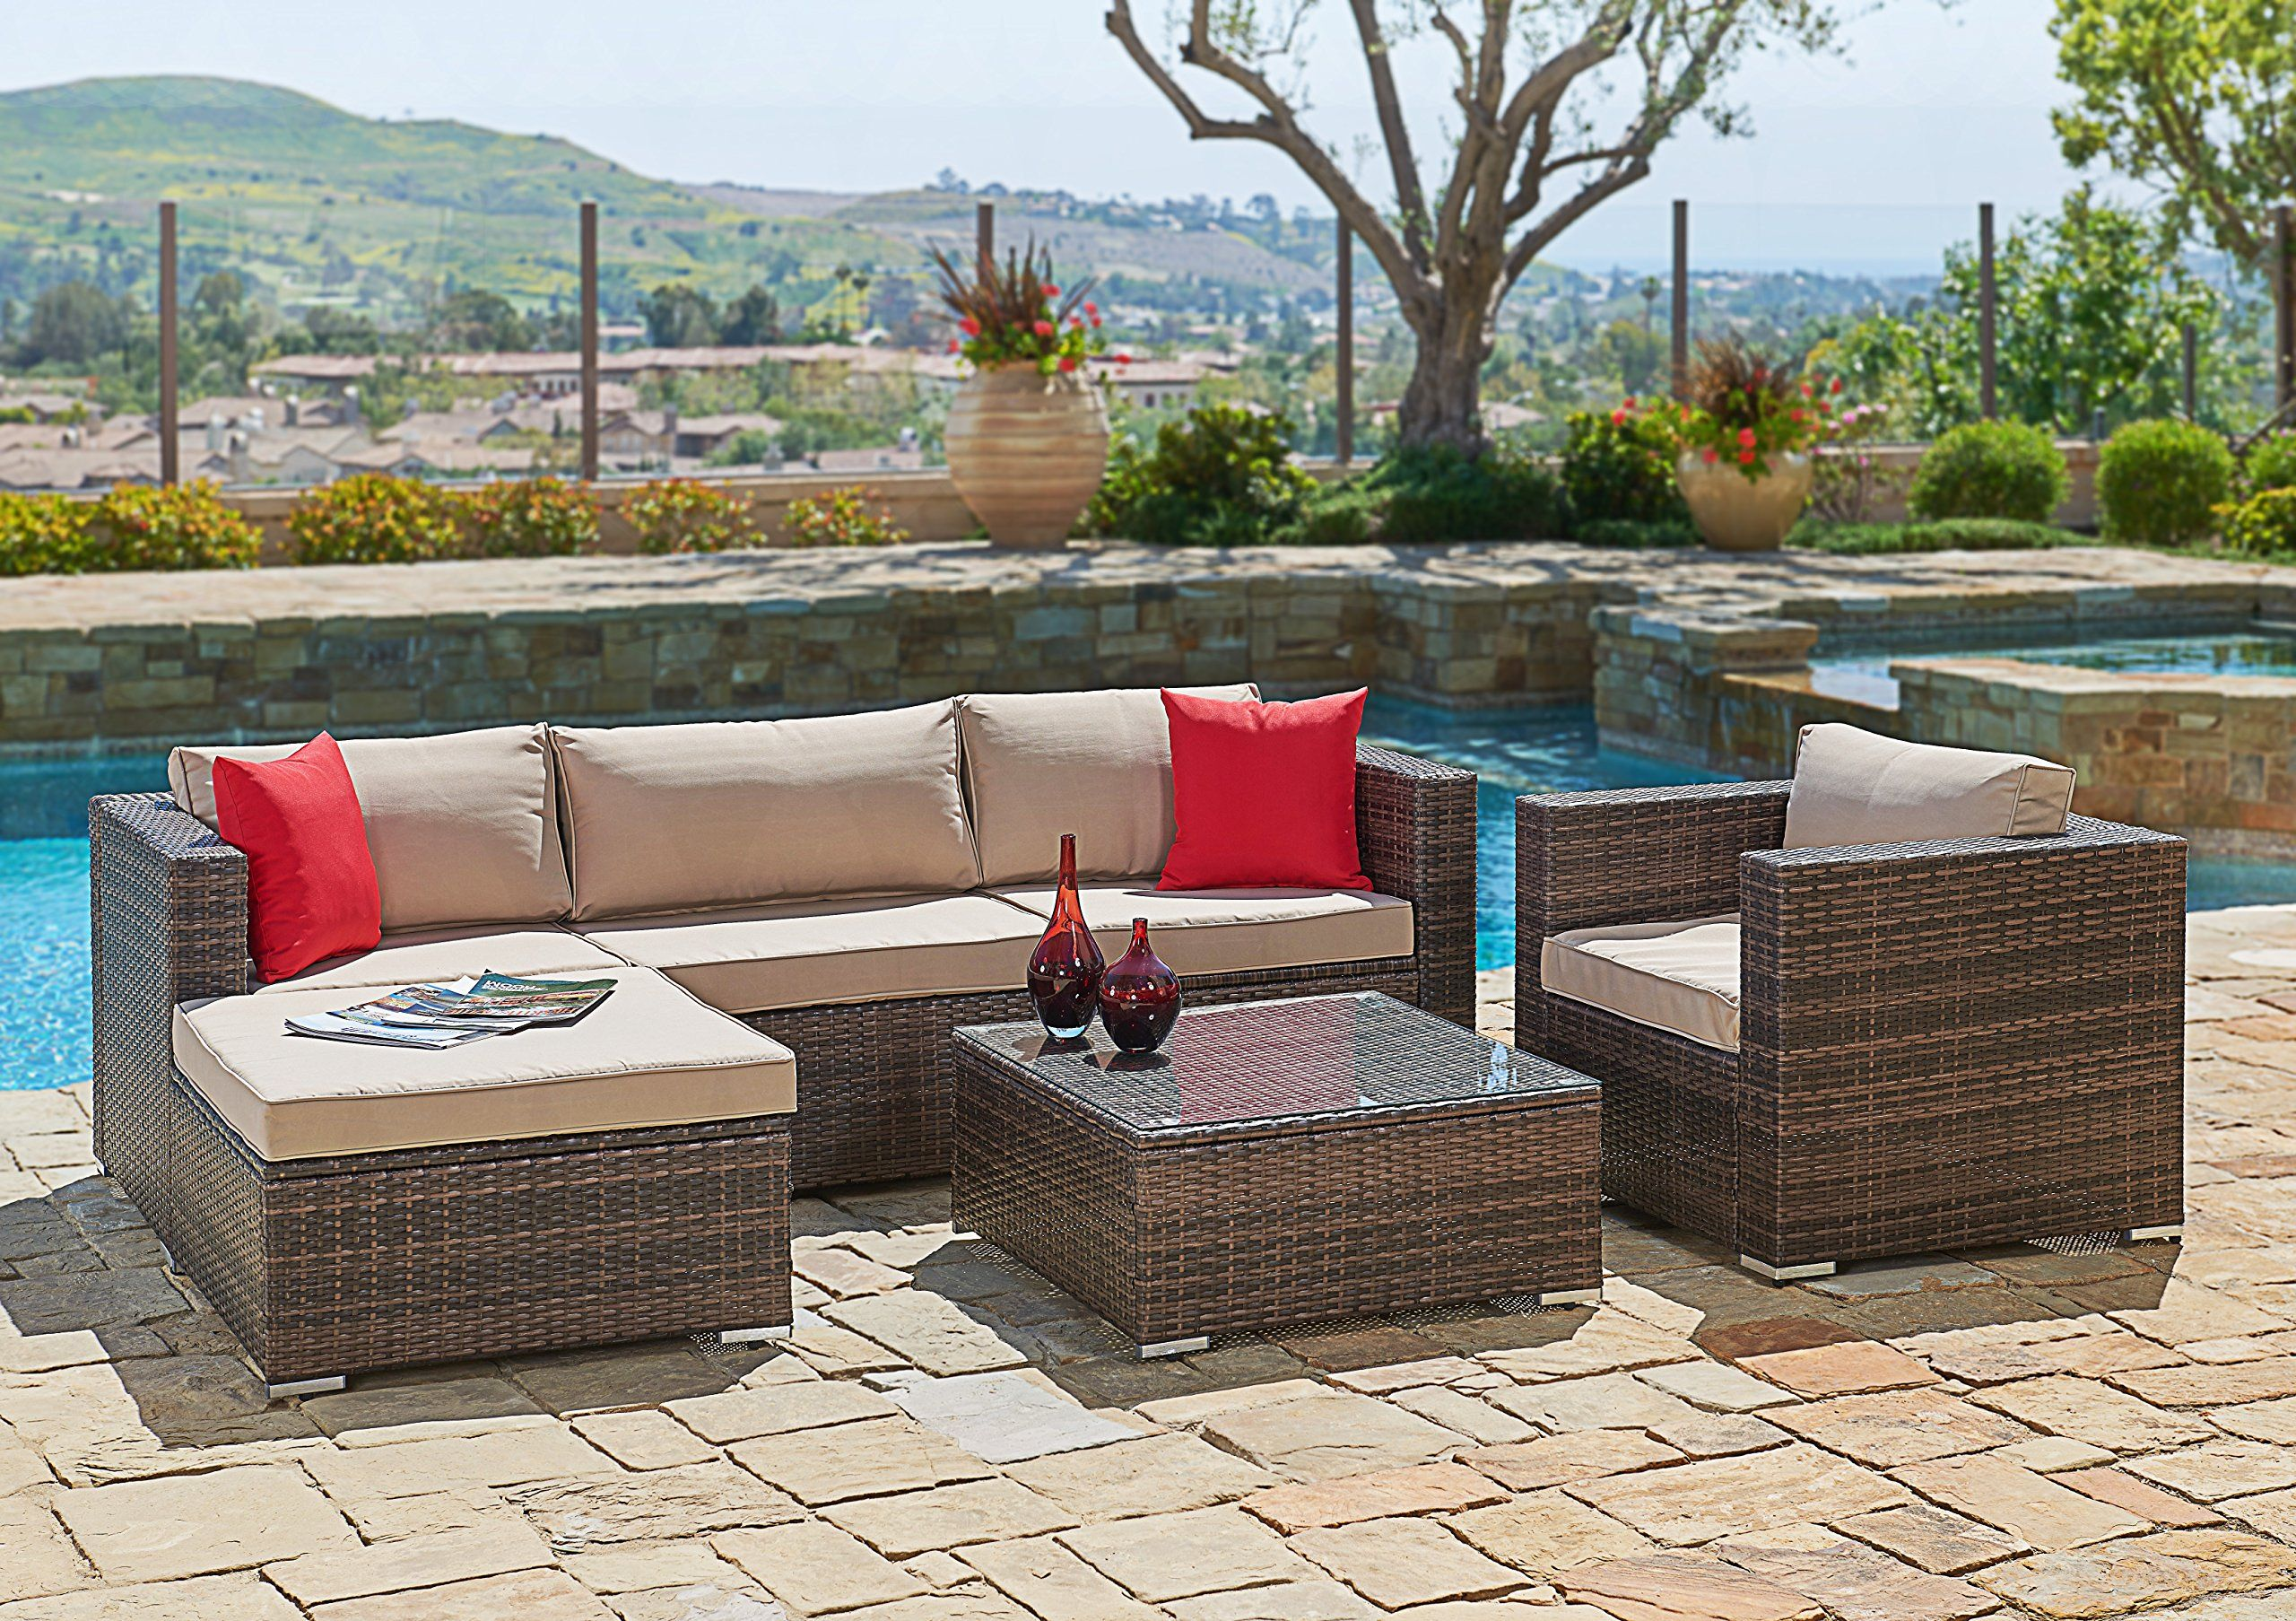 Suncrown Outdoor Furniture Sectional Sofa & Chair 6 Piece Set